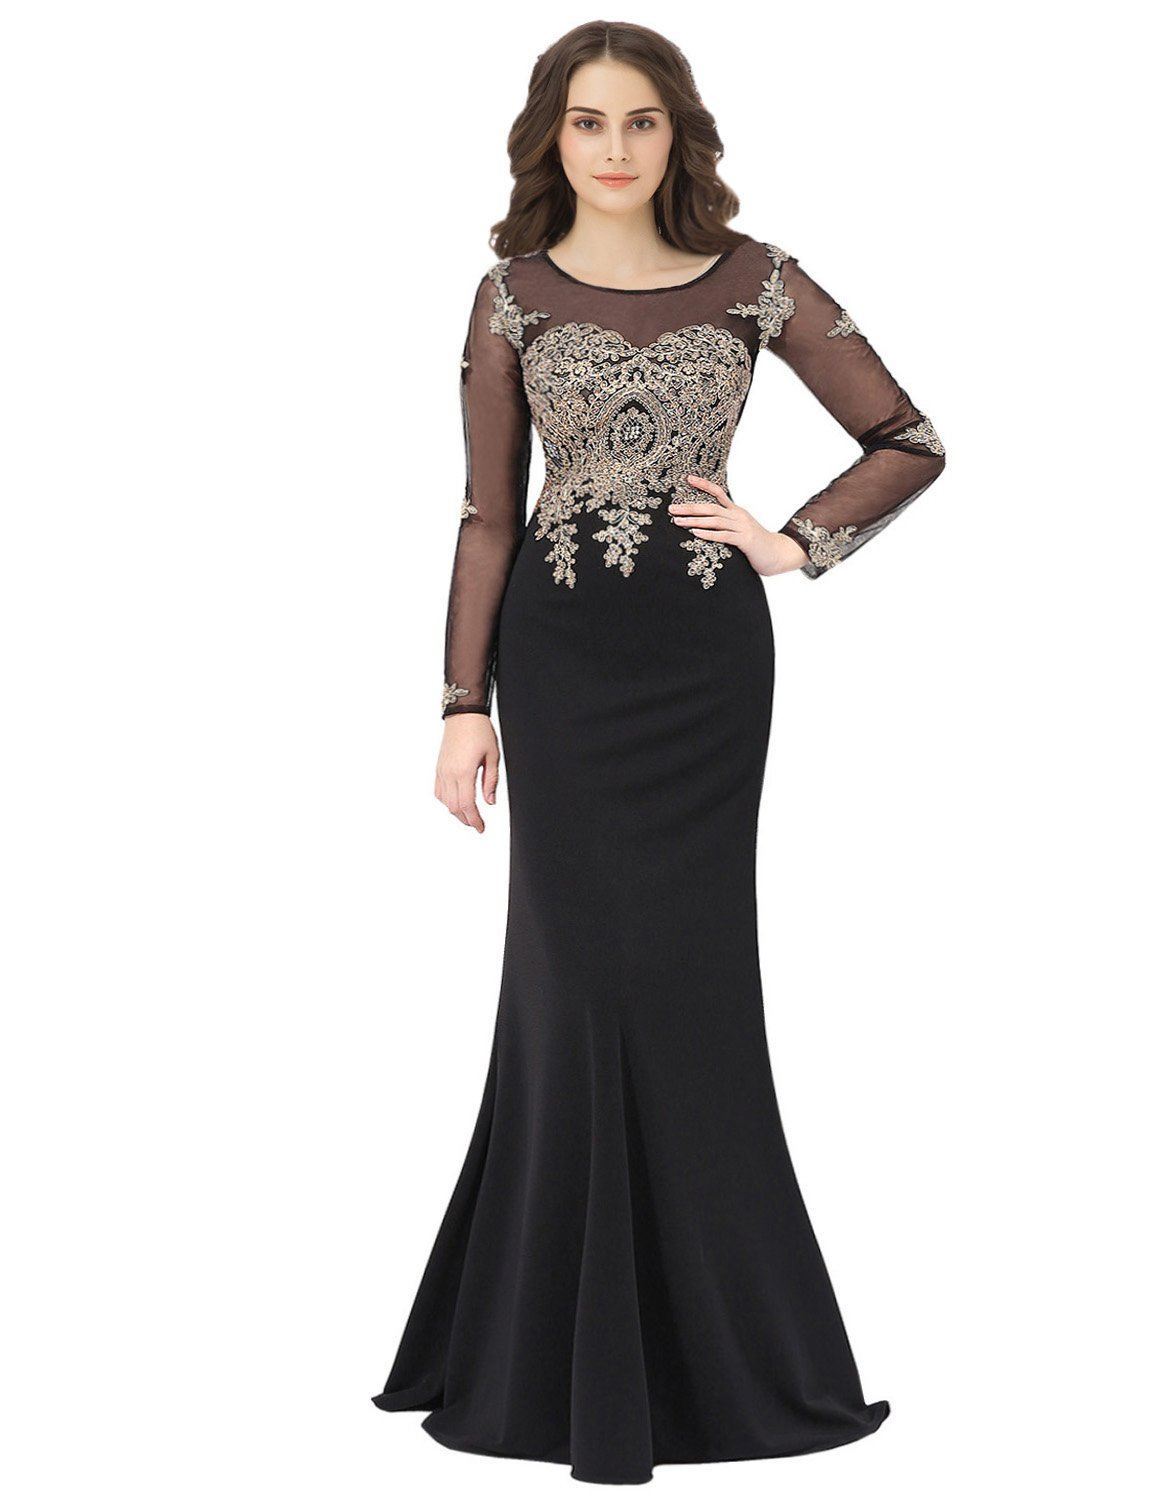 45ce2010f ... Long Sleeve Illusion Neckline Evening Dress Mother of The Bride Groom  Gowns Black US14. ; 